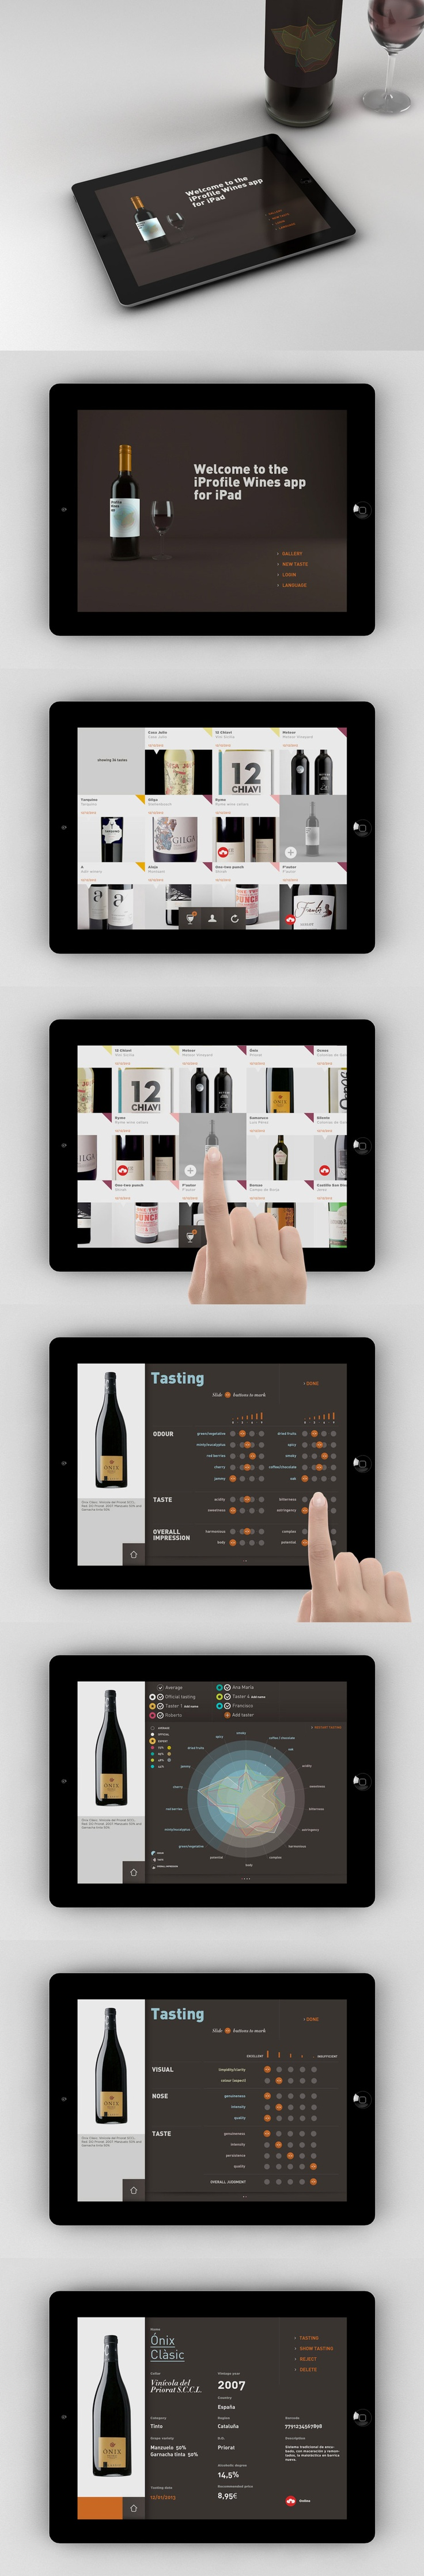 iPad app for wine tasters.